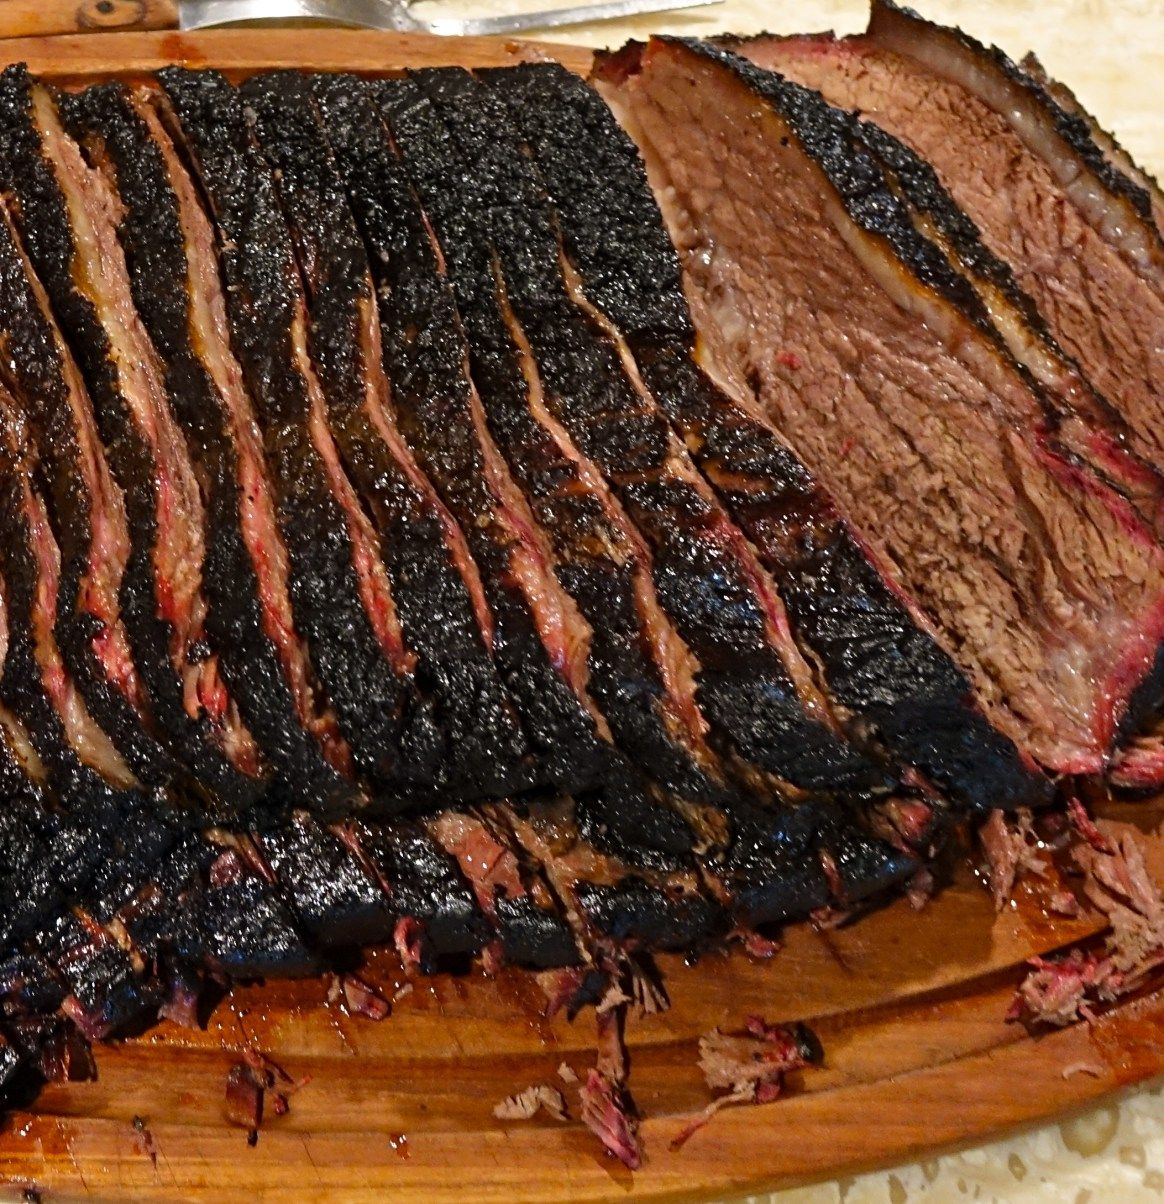 World Famous Smoked Brisket Recipe  FlunkingFamily com is part of food-recipes - This is it! The World's Greatest Smoked Brisket Recipe Ever ~ Another Texas Ranch Recipe Brought To You By www FlunkingFamily com